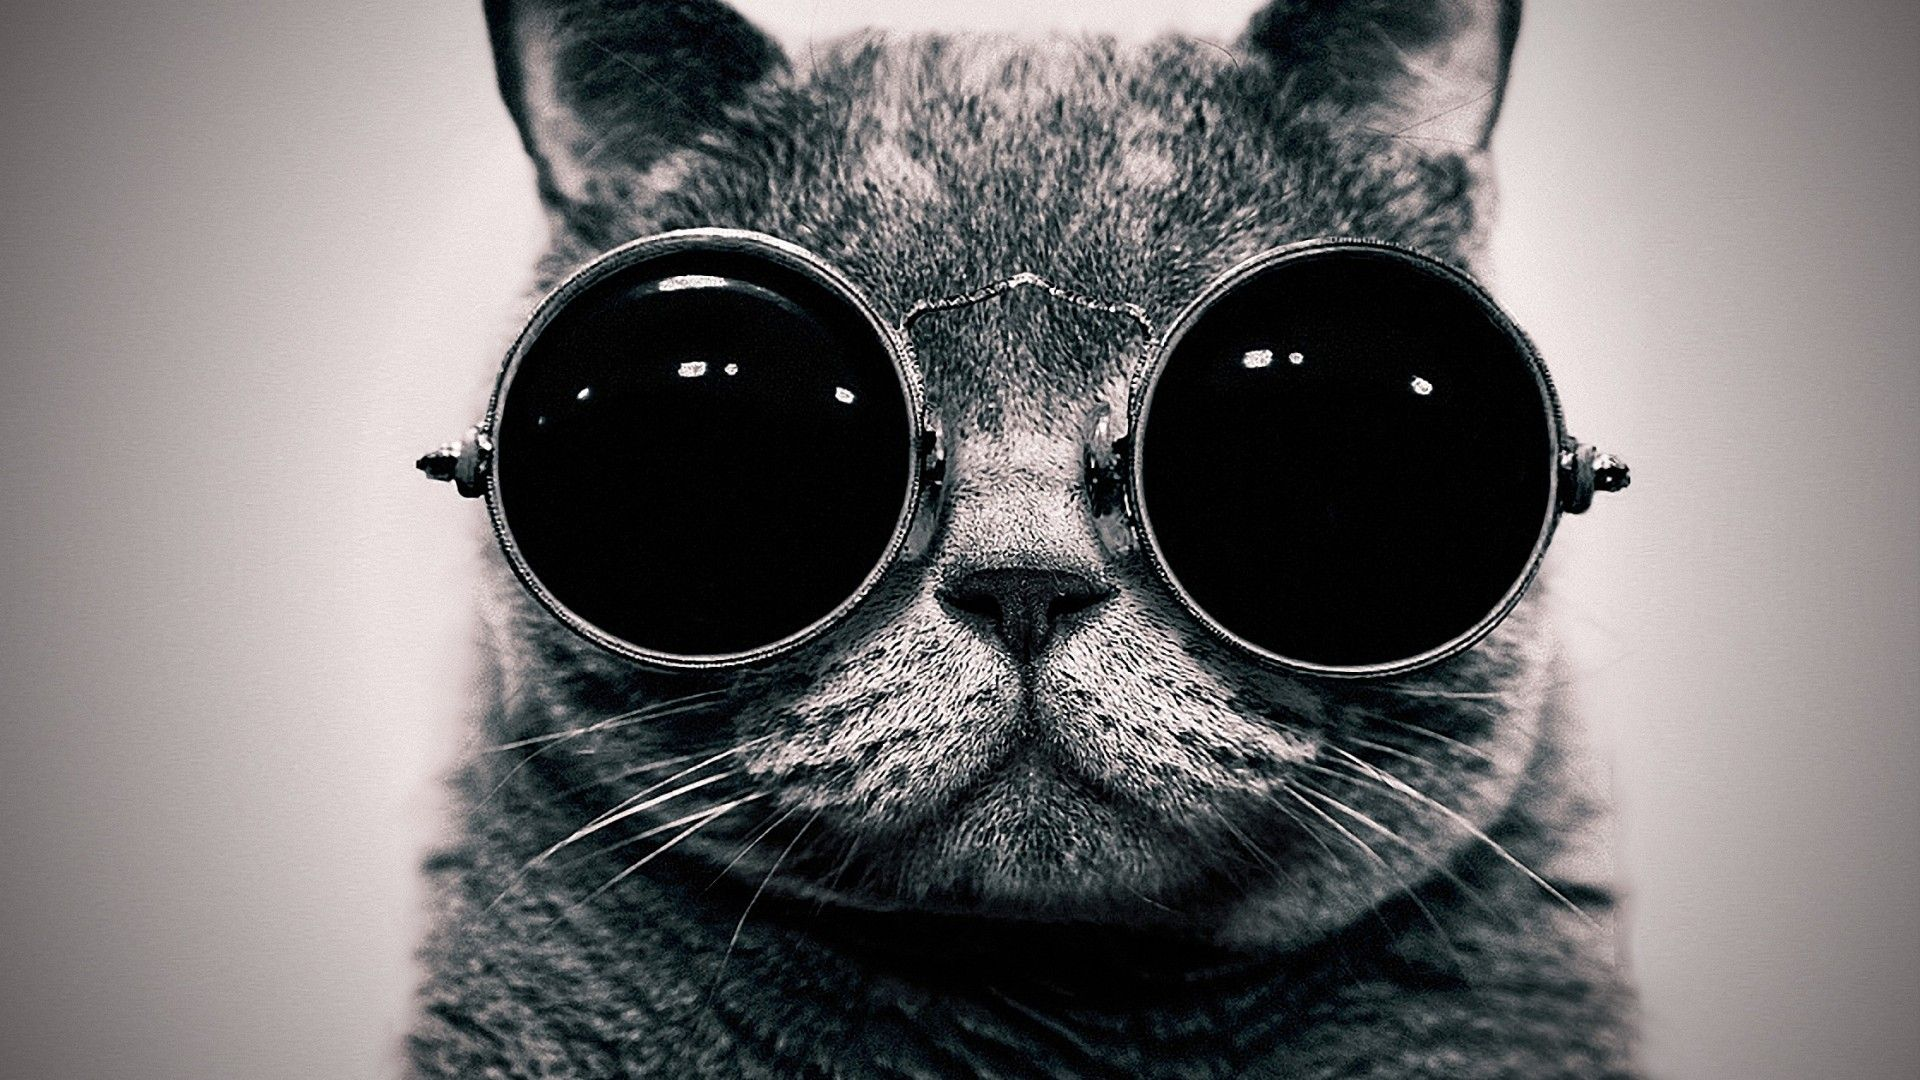 Hipster Cat Wallpapers   Top Hipster Cat Backgrounds 1920x1080